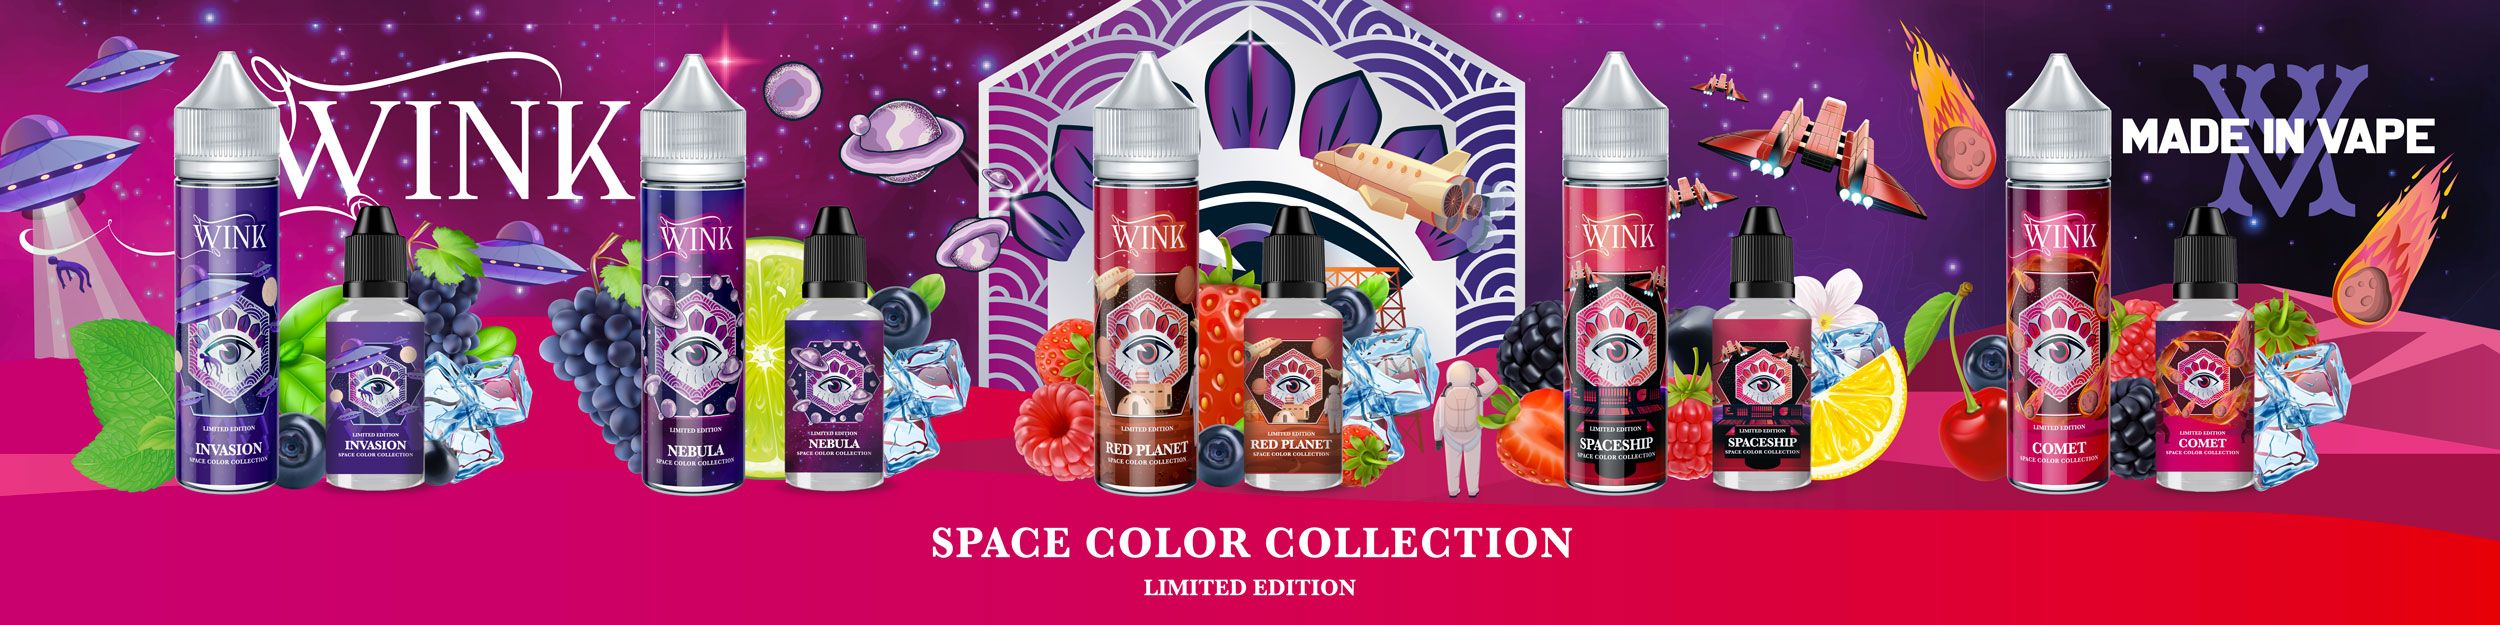 WINK SPACE COLOR COLLECTION